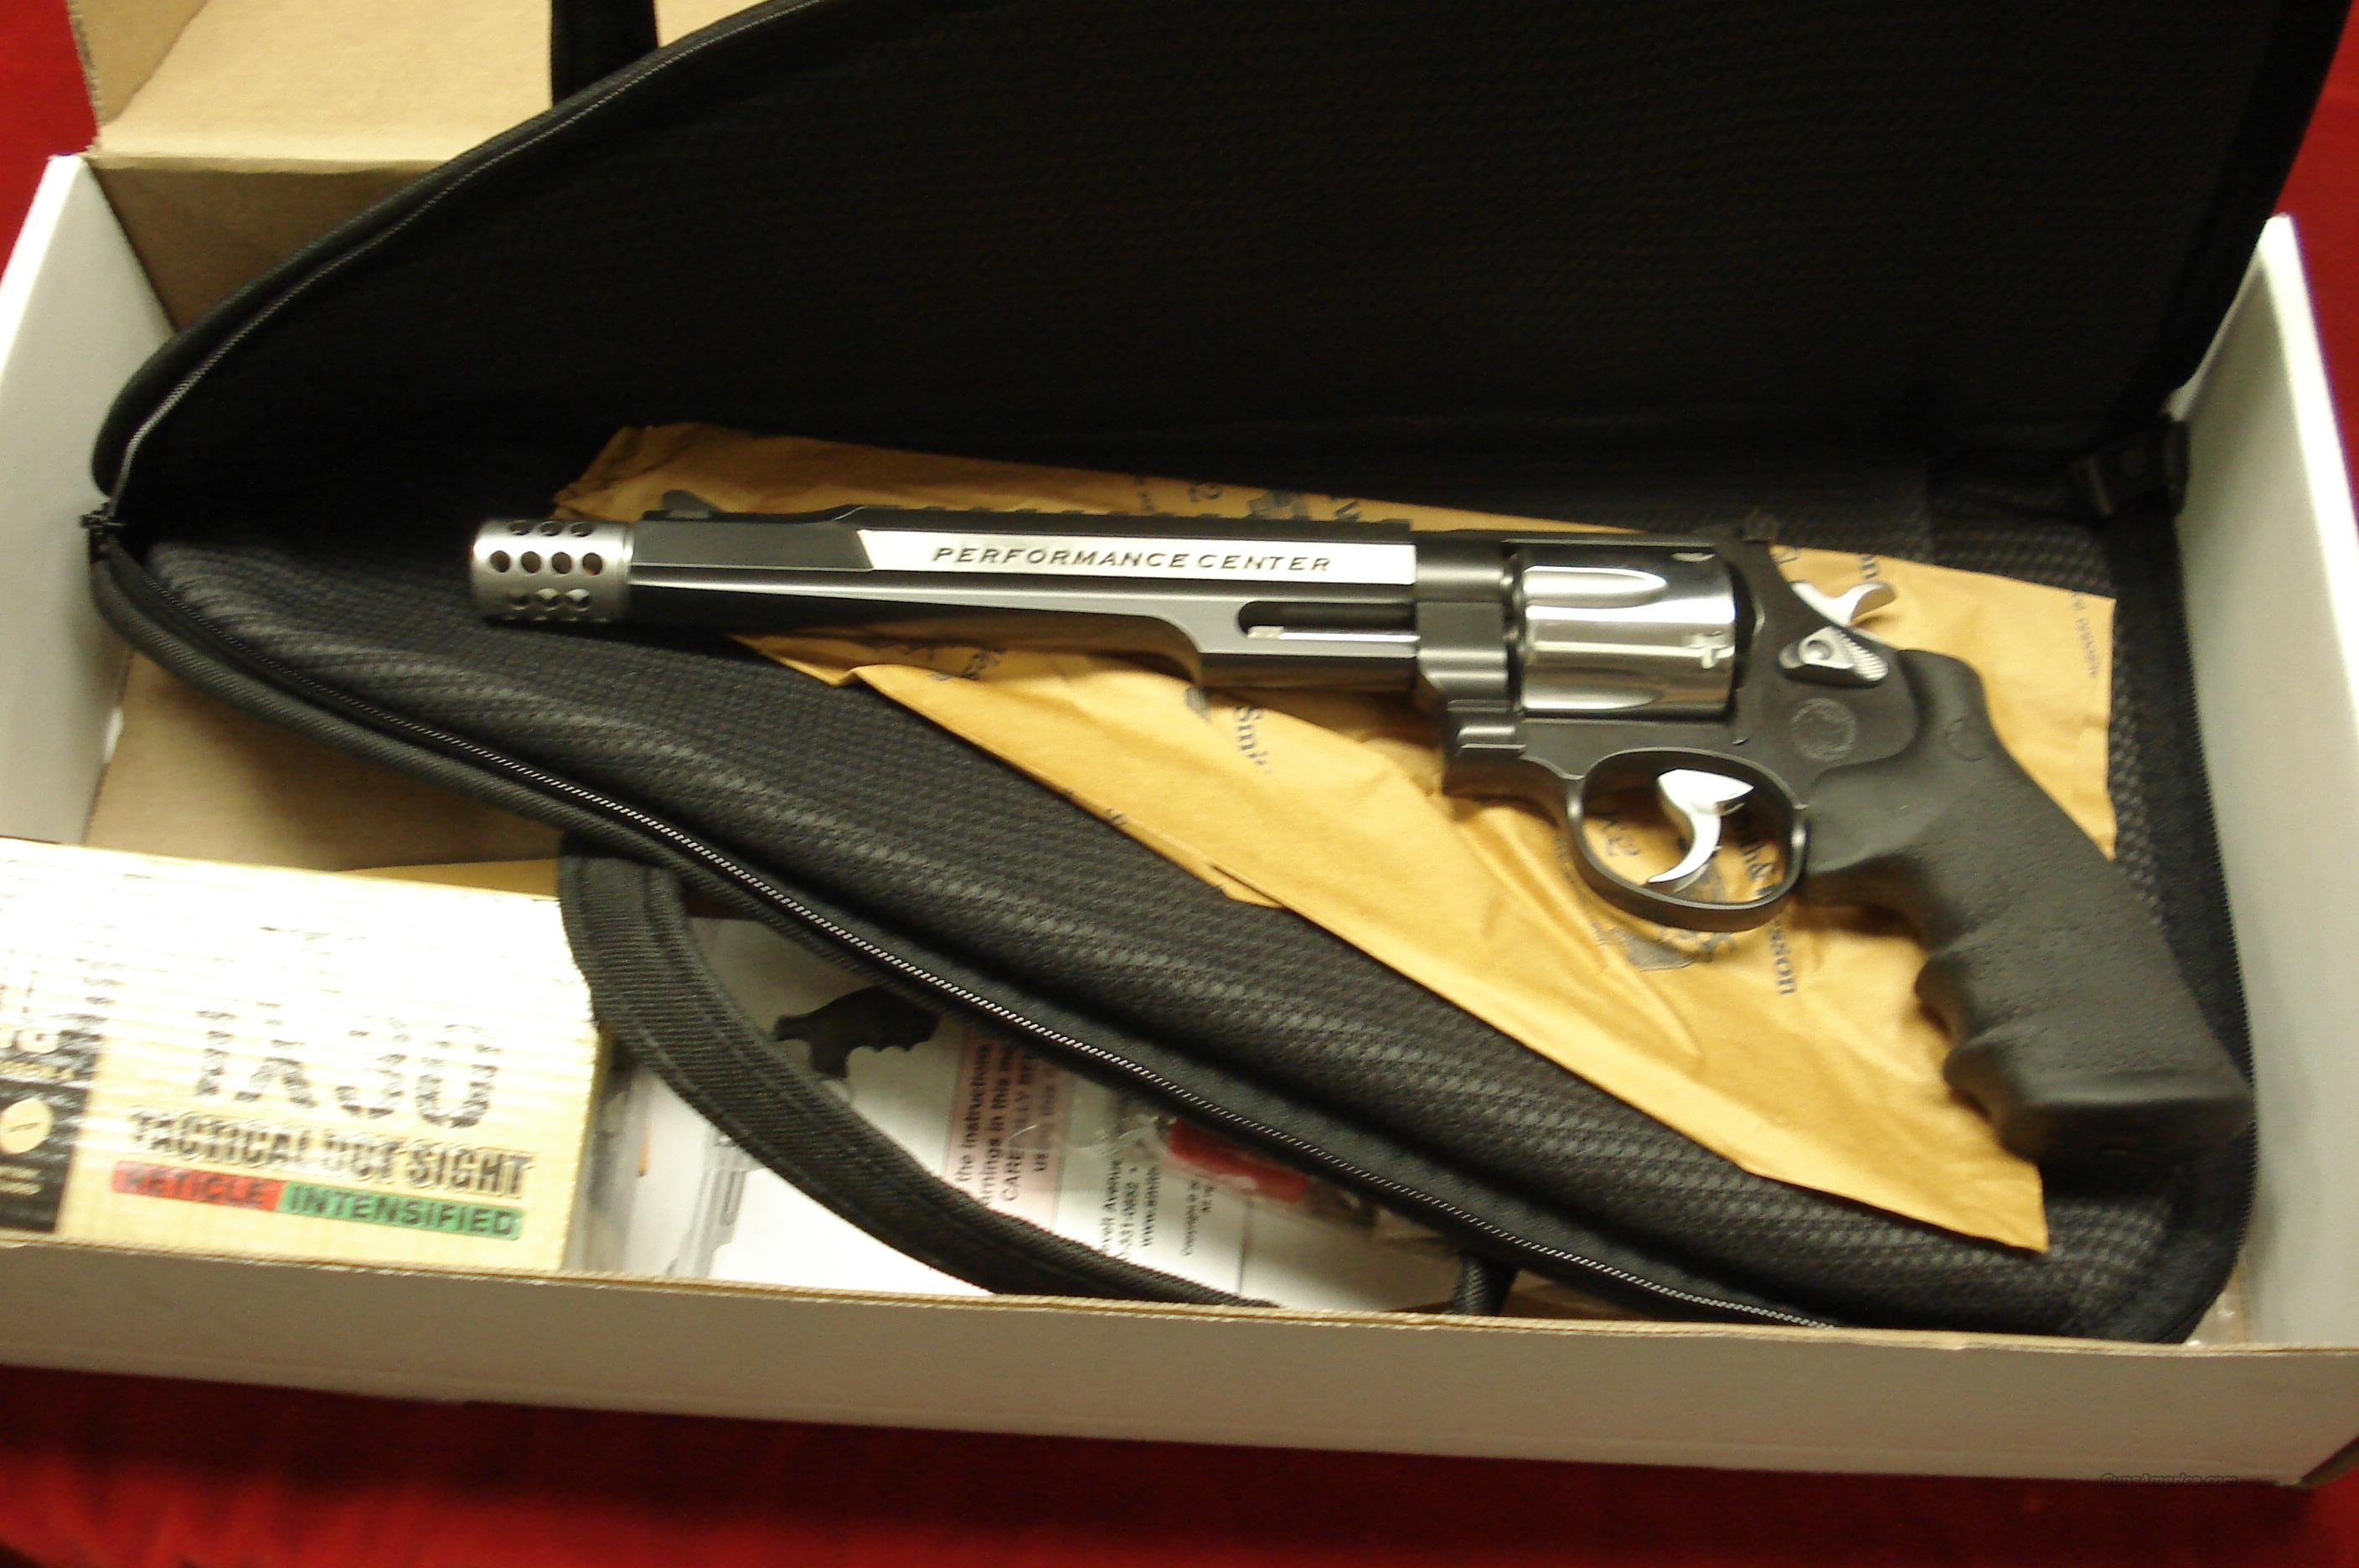 "SMITH AND WESSON PERFORMANCE CENTER MODEL 629  HUNTER 44 MAGNUM 7.5"" BARREL W/MUZZLE BREAK TWO TONE STAINLESS NEW (170318)  Guns > Pistols > Smith & Wesson Revolvers > Performance Center"